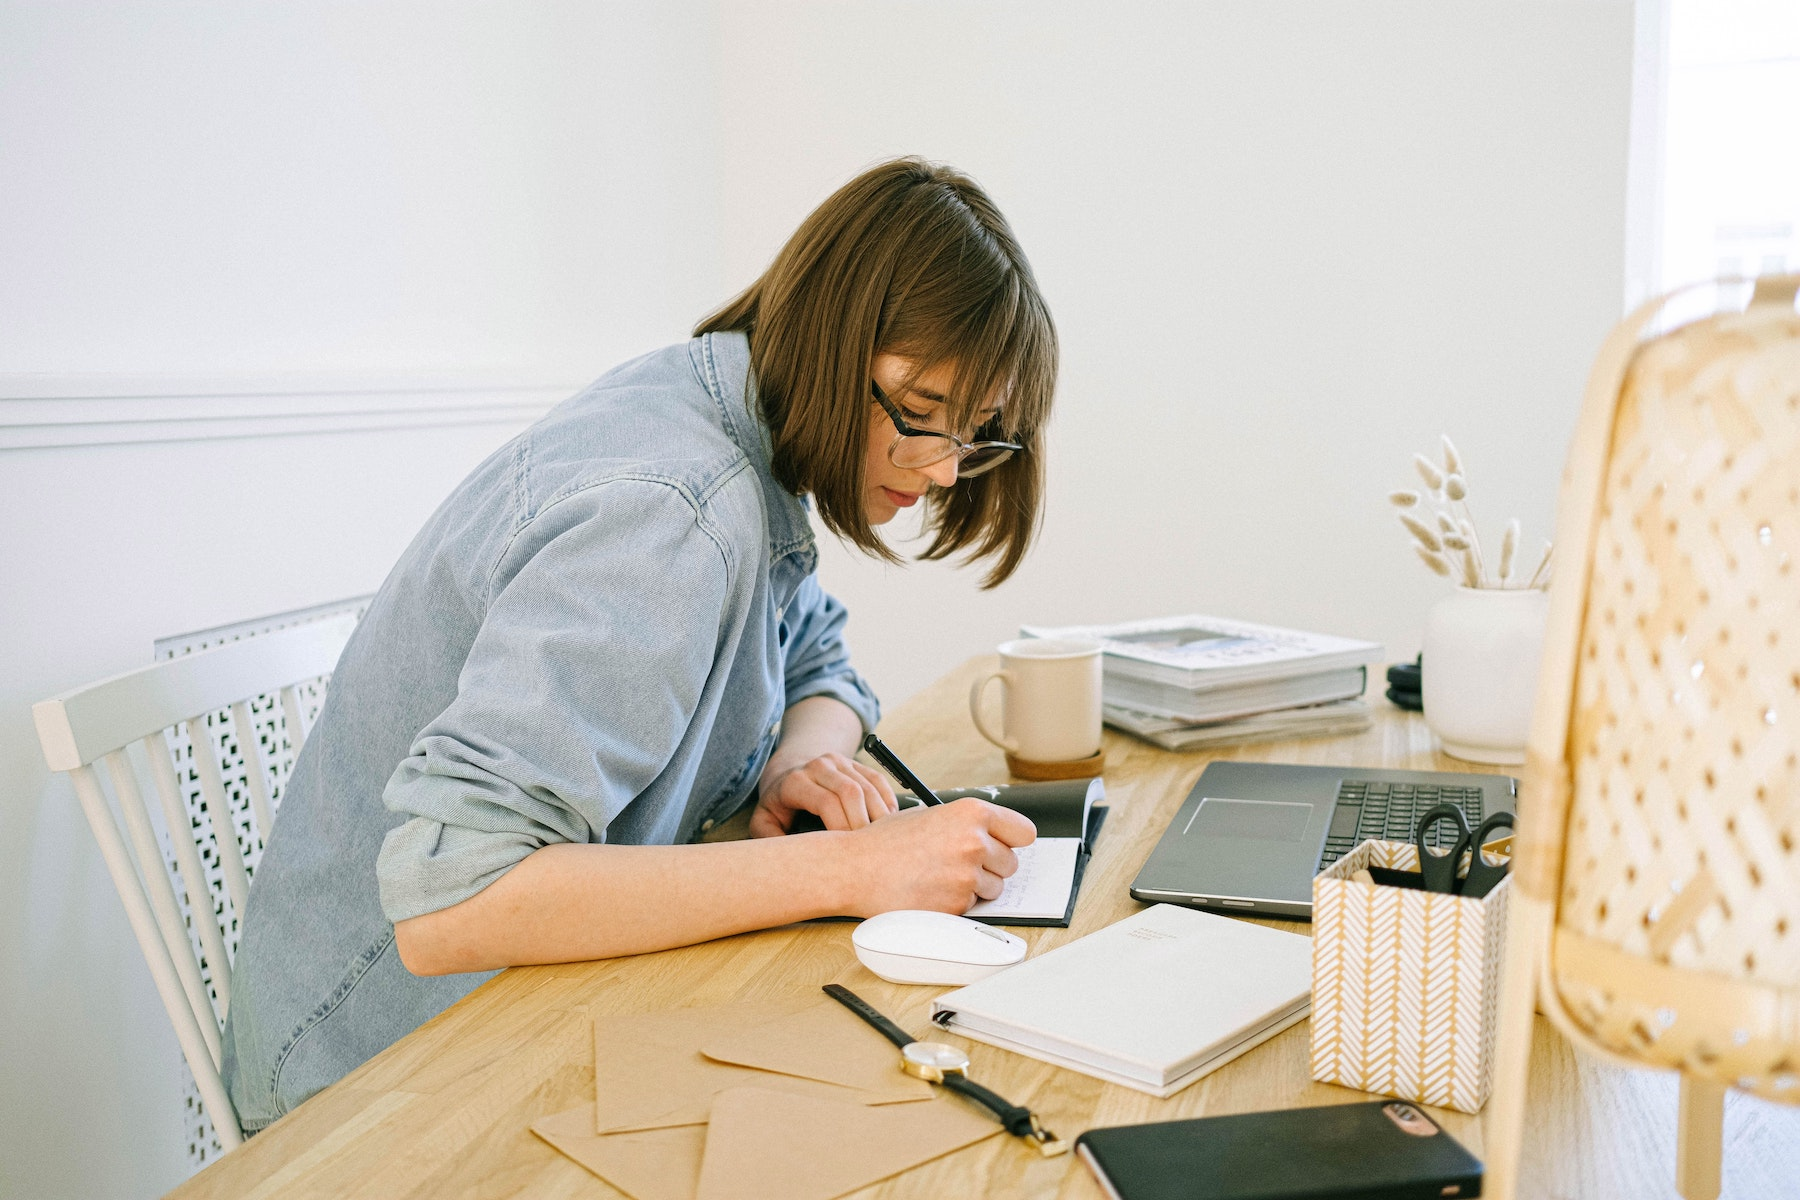 4 Things you can do to make working from home more secure